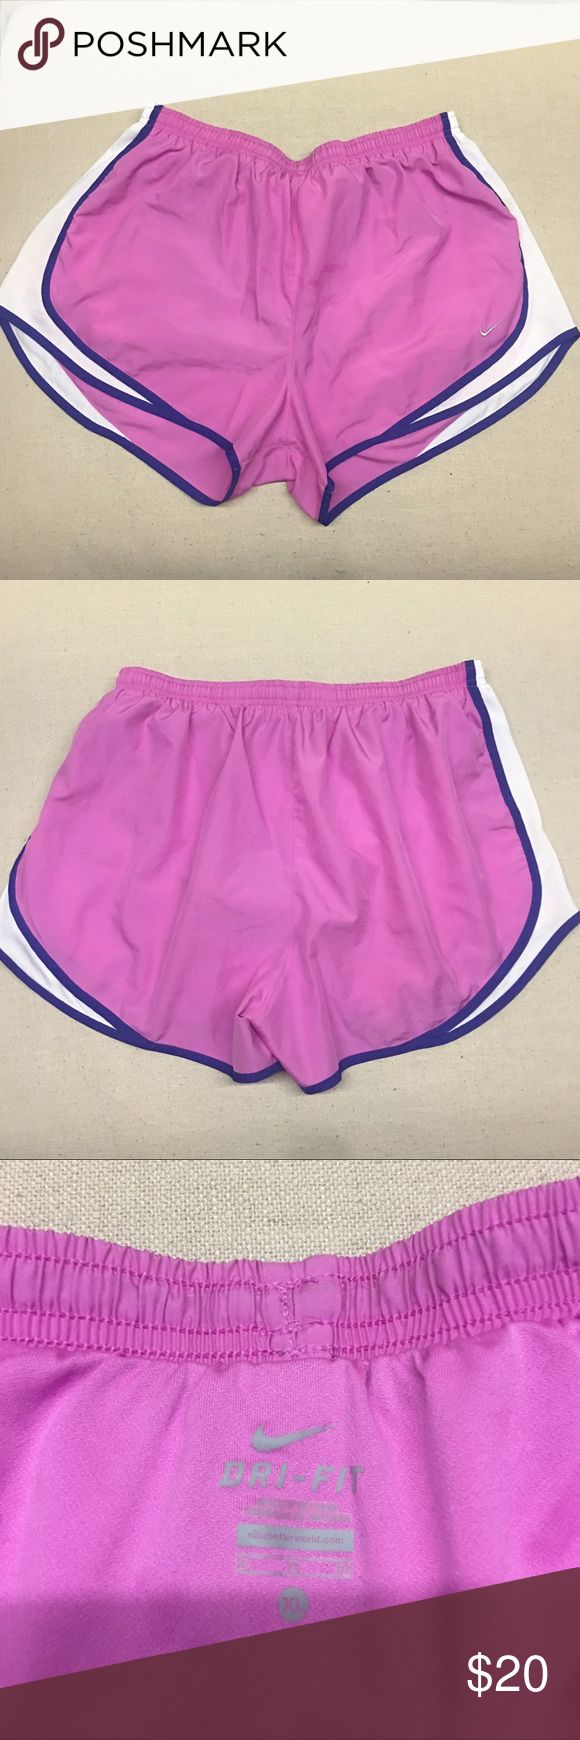 Nike Dri Fit Shorts Great condition dri fit shorts number some faint stain on the front but if I still fit into them I'd still wear them all the time. Pink with purple trip and white sides.  Nike Dri Fit Style, staple for a summer wardrobe or to start off a New Years resolution! Offers are welcomed and I love to bundle so check out the rest of my closet and no Trades or holds please. Nike Shorts